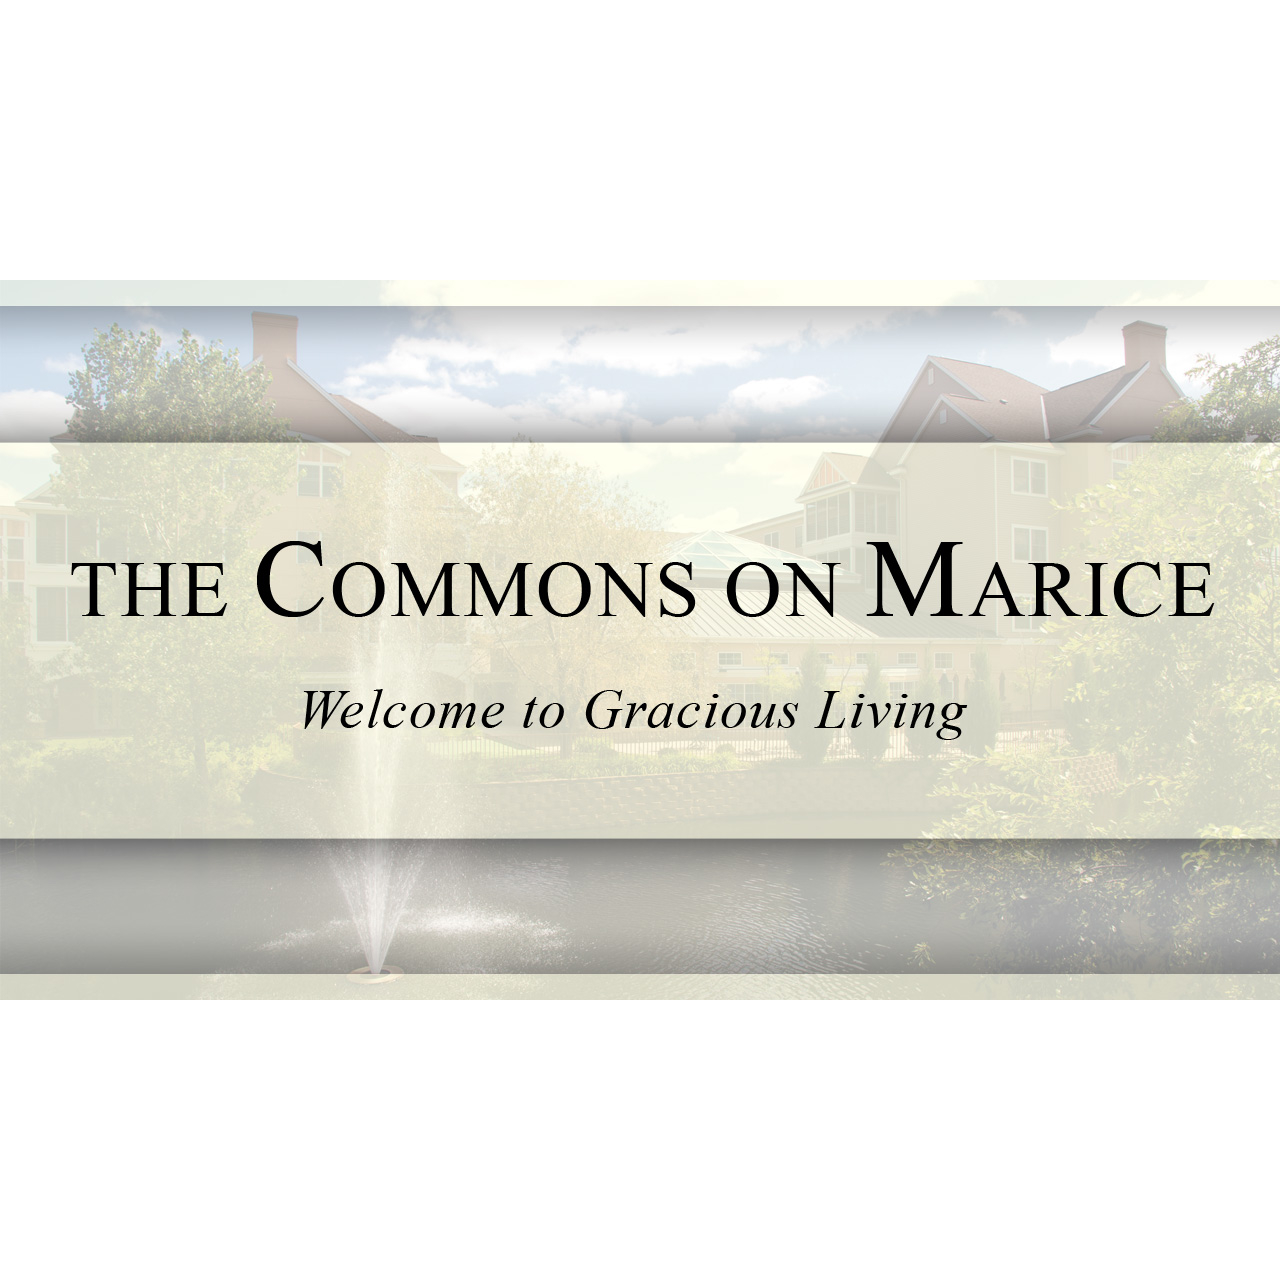 The Commons On Marice - Eagan, MN 55121 - (651) 688-9999 | ShowMeLocal.com